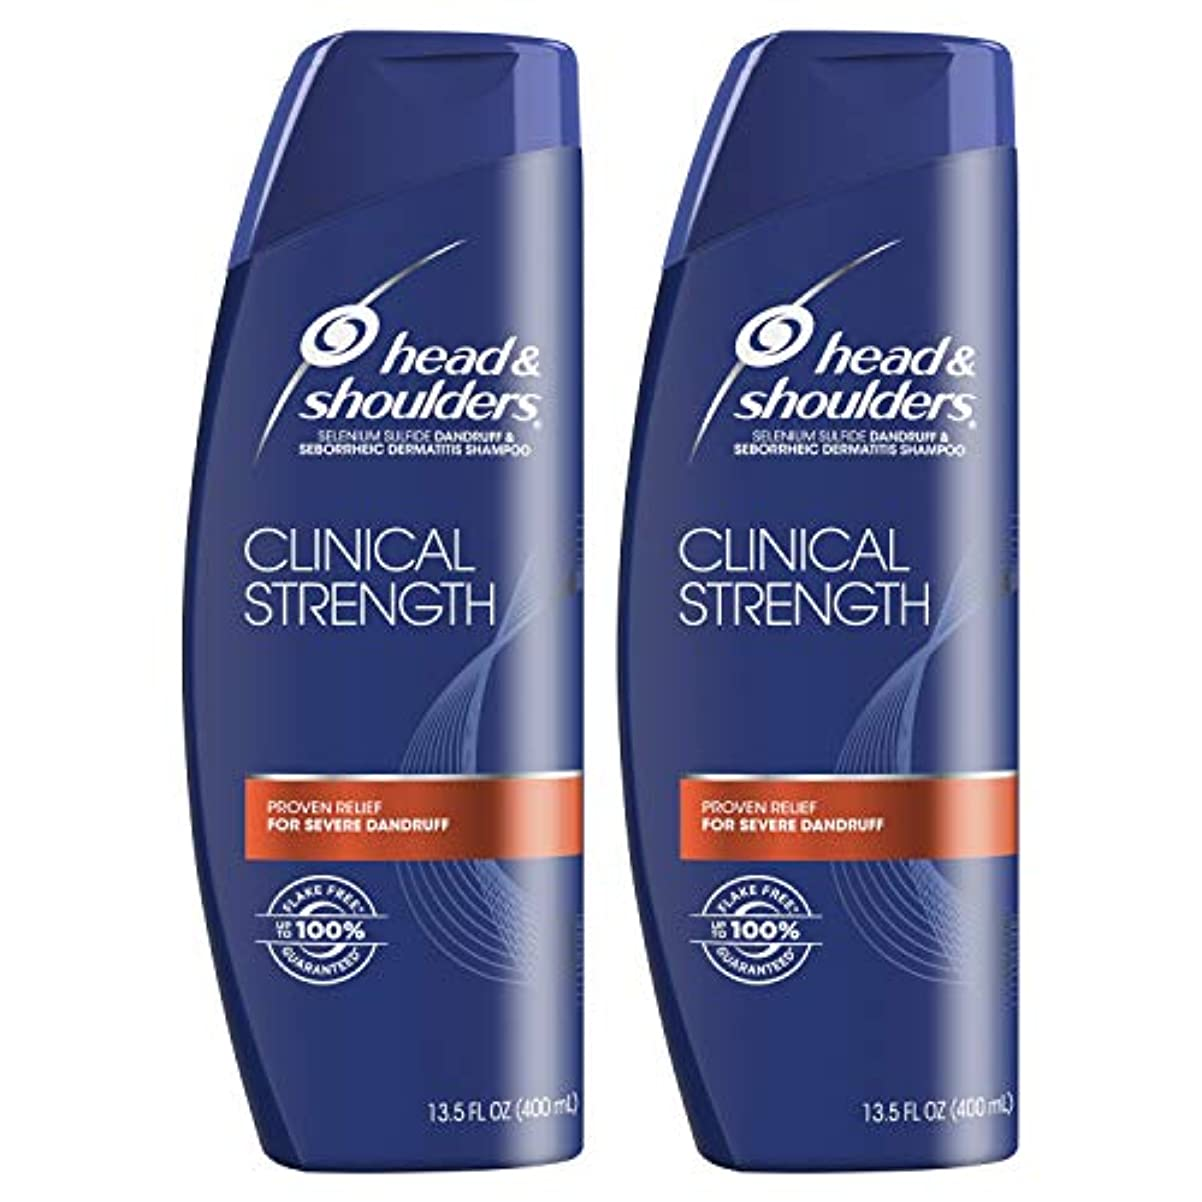 支援アマチュア市区町村Head and Shoulders Clinical Strength Dandruff and Seborrheic Dermatitisシャンプー、13.5 FL OZ